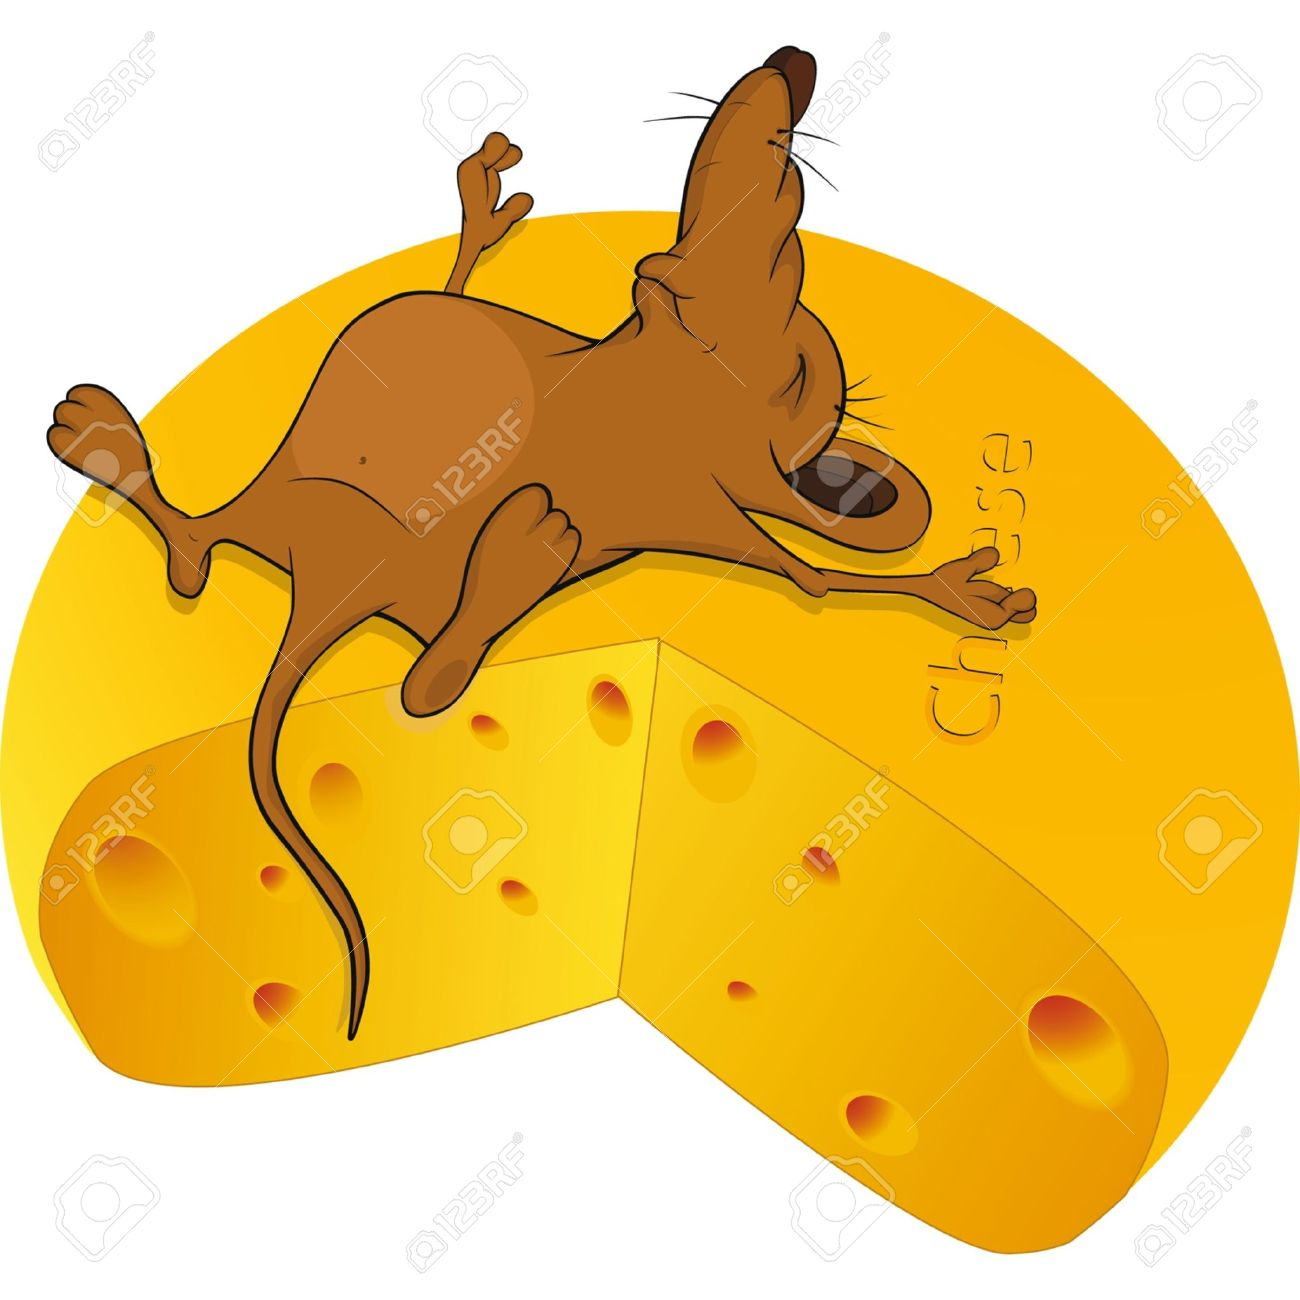 https://previews.123rf.com/images/liusa/liusa1202/liusa120200143/12485142-Sleeping-little-mouse-and-the-big-piece-of-cheese-Cartoon-Stock-Photo.jpg